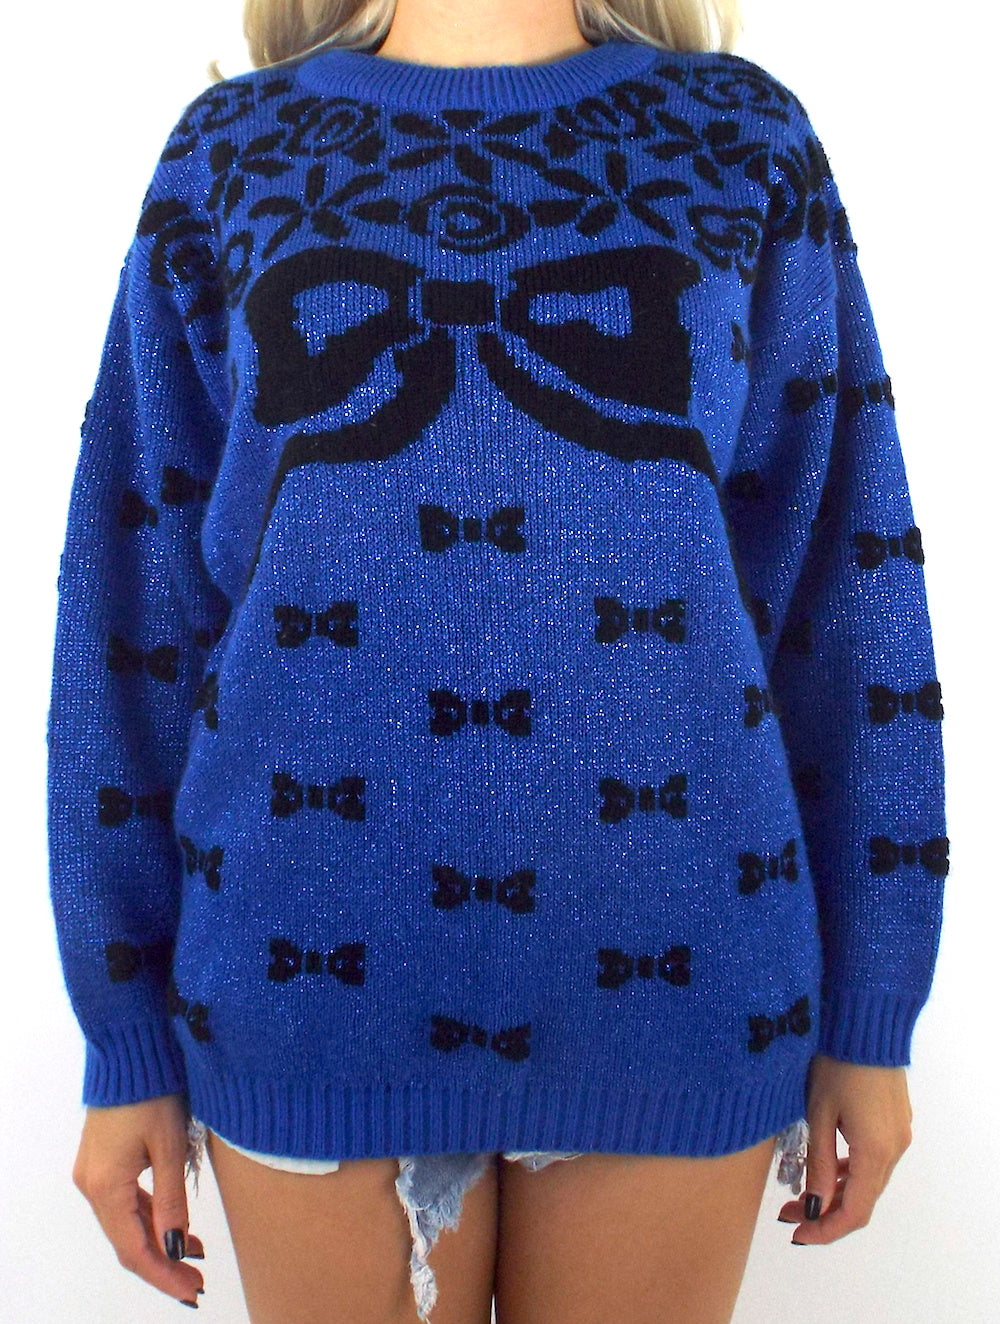 Vintage 80s Glittery Blue Bow Design Sweater